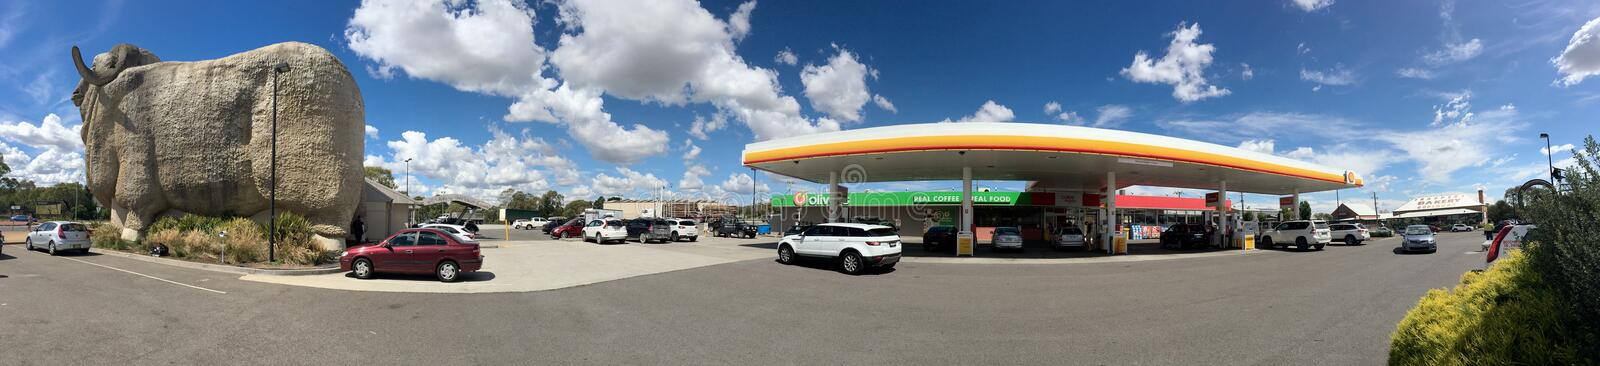 The Big Merino of Goulburn and Shell gas petrol station. Panoramic image of popular iconic monument in Goulburn next to Shell station. There is a large tourist stock photo